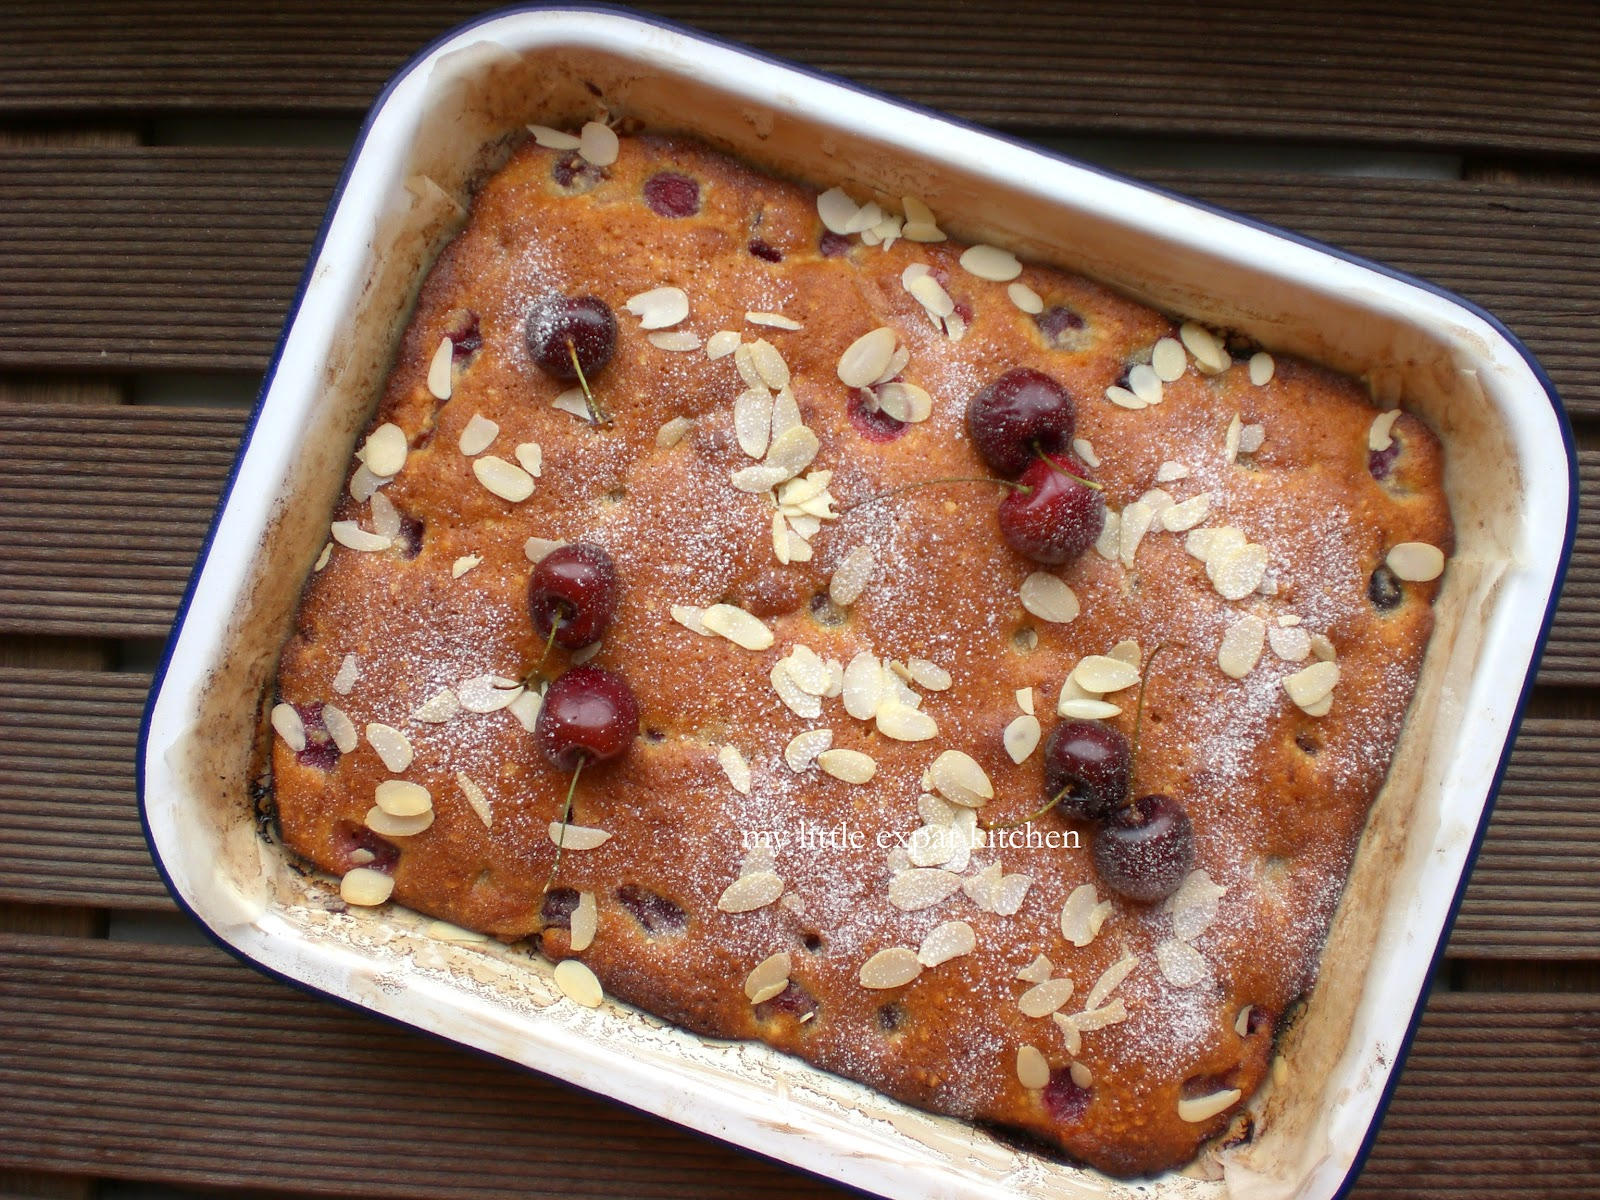 ... cherry chocolate almond bar cherry almond clafoutis cherry almond cake